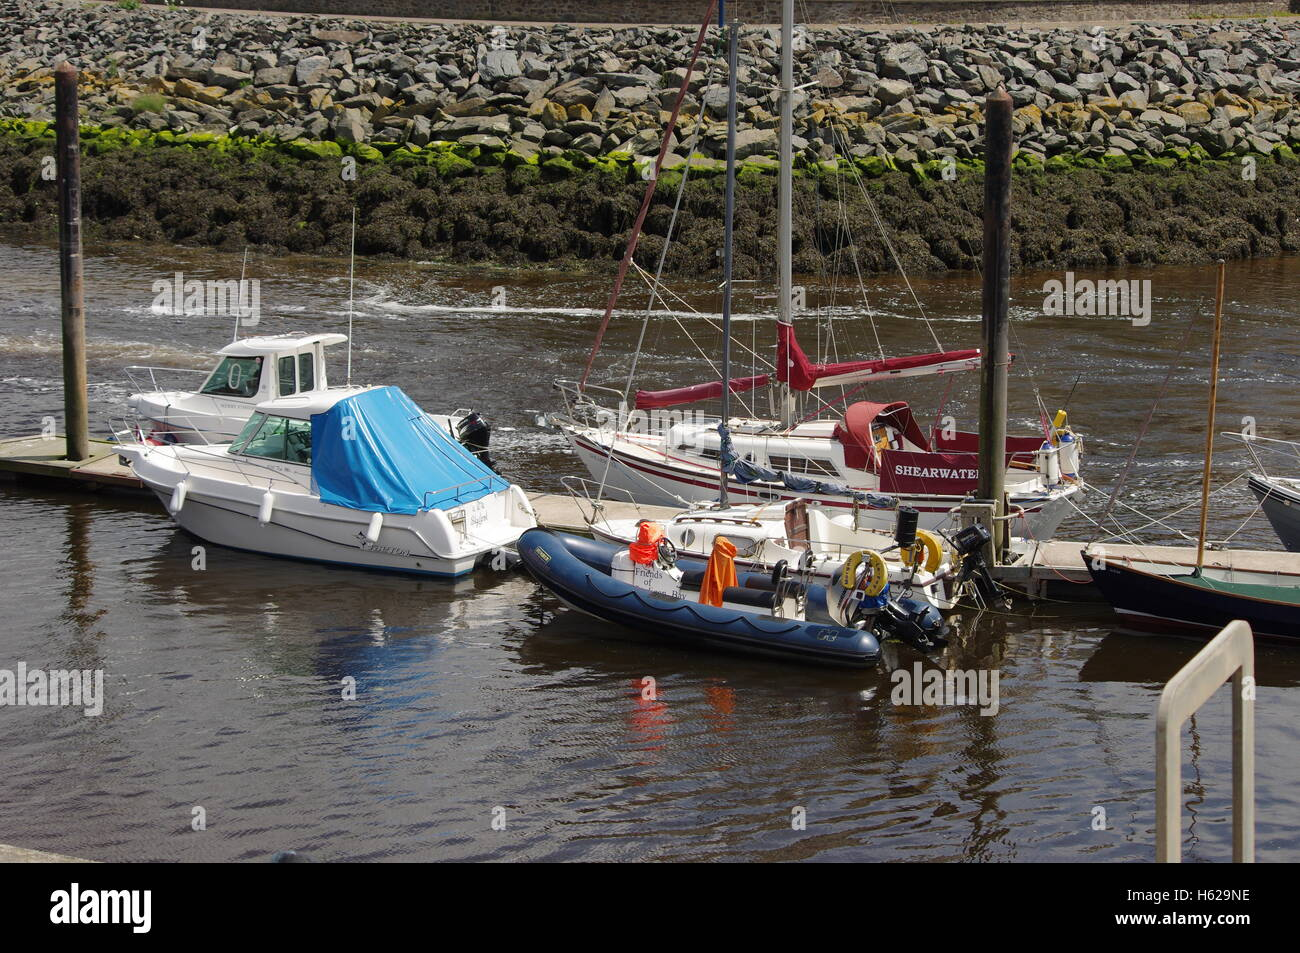 View overlooking the boats at Aberystwyth Harbour / Marina. - Stock Image